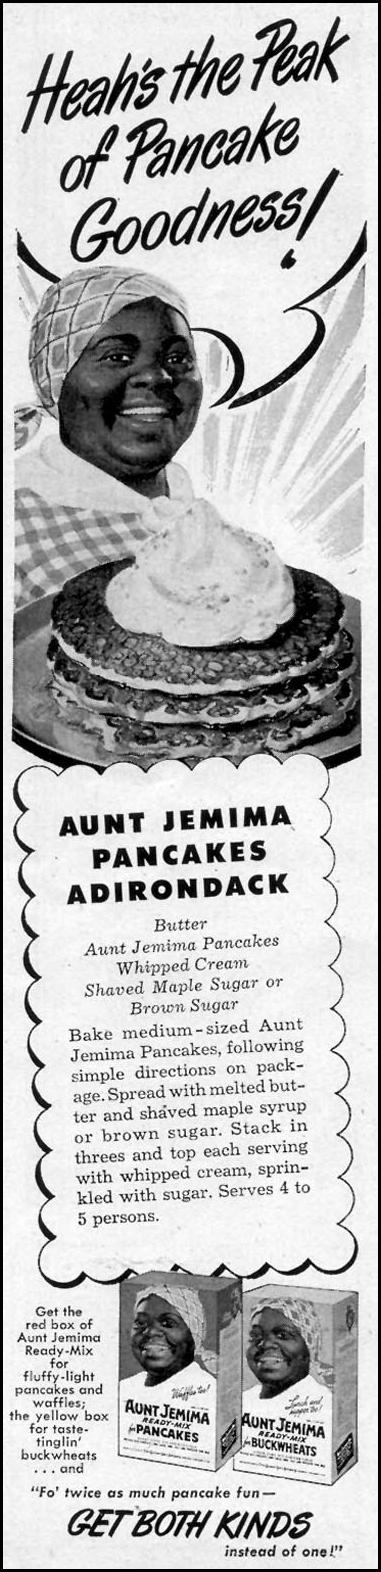 AUNT JEMIMA READY-MIX PANCAKES WOMAN'S DAY 12/01/1949 p. 2